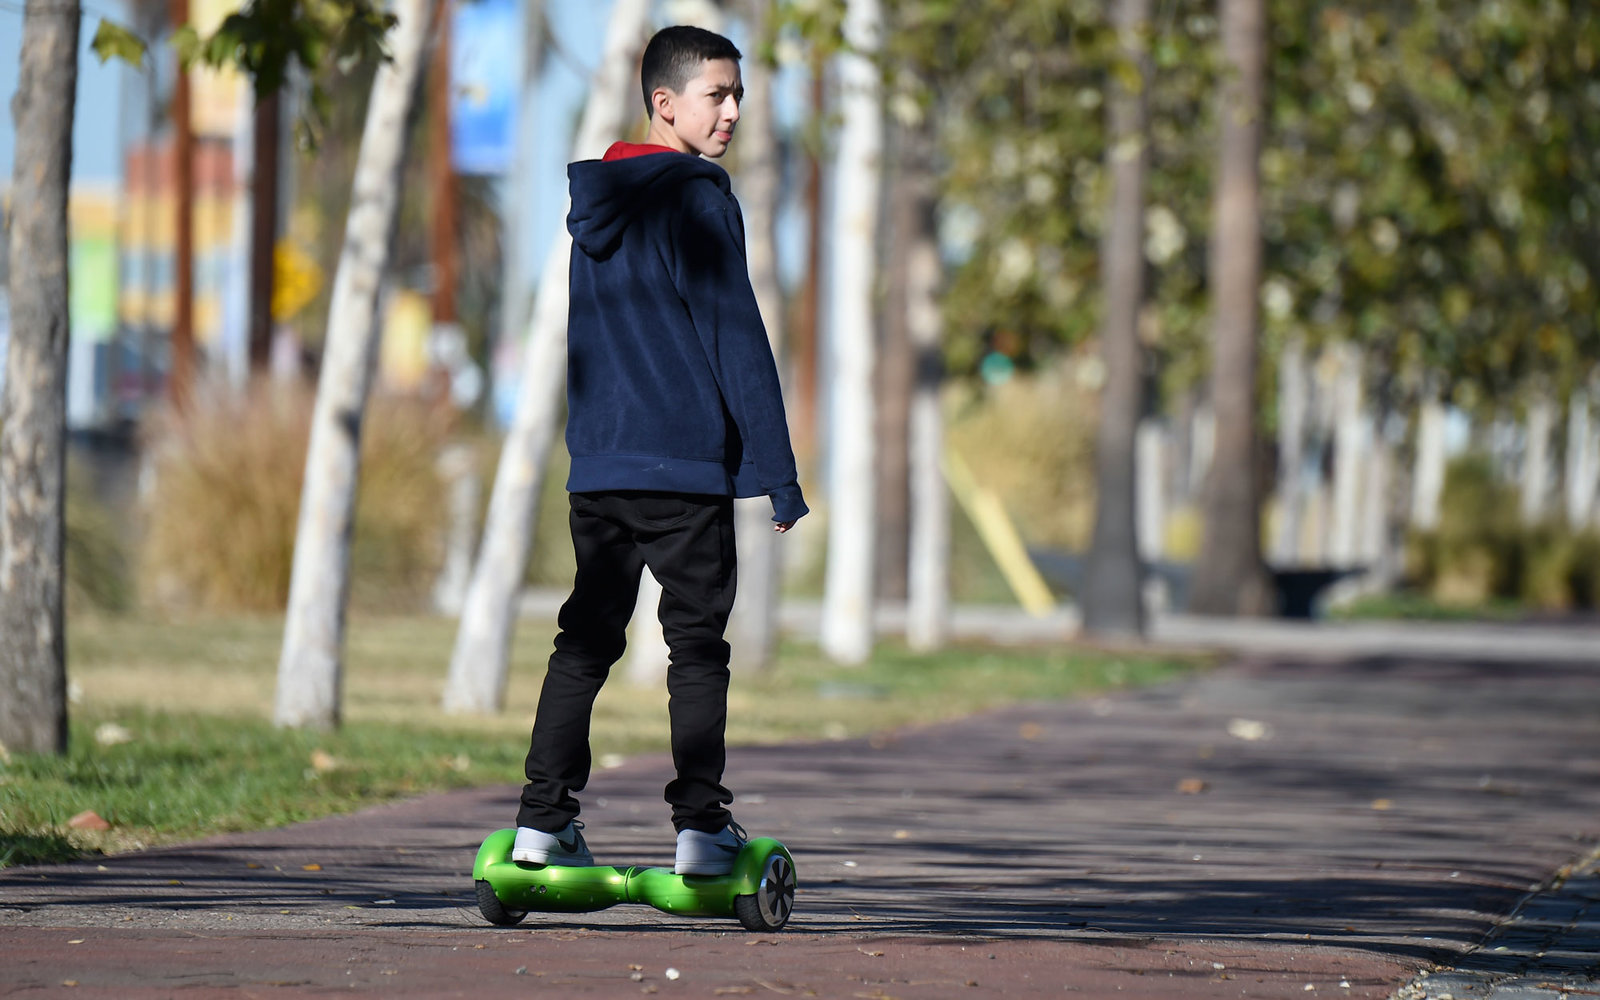 Hoverboards Are Banned